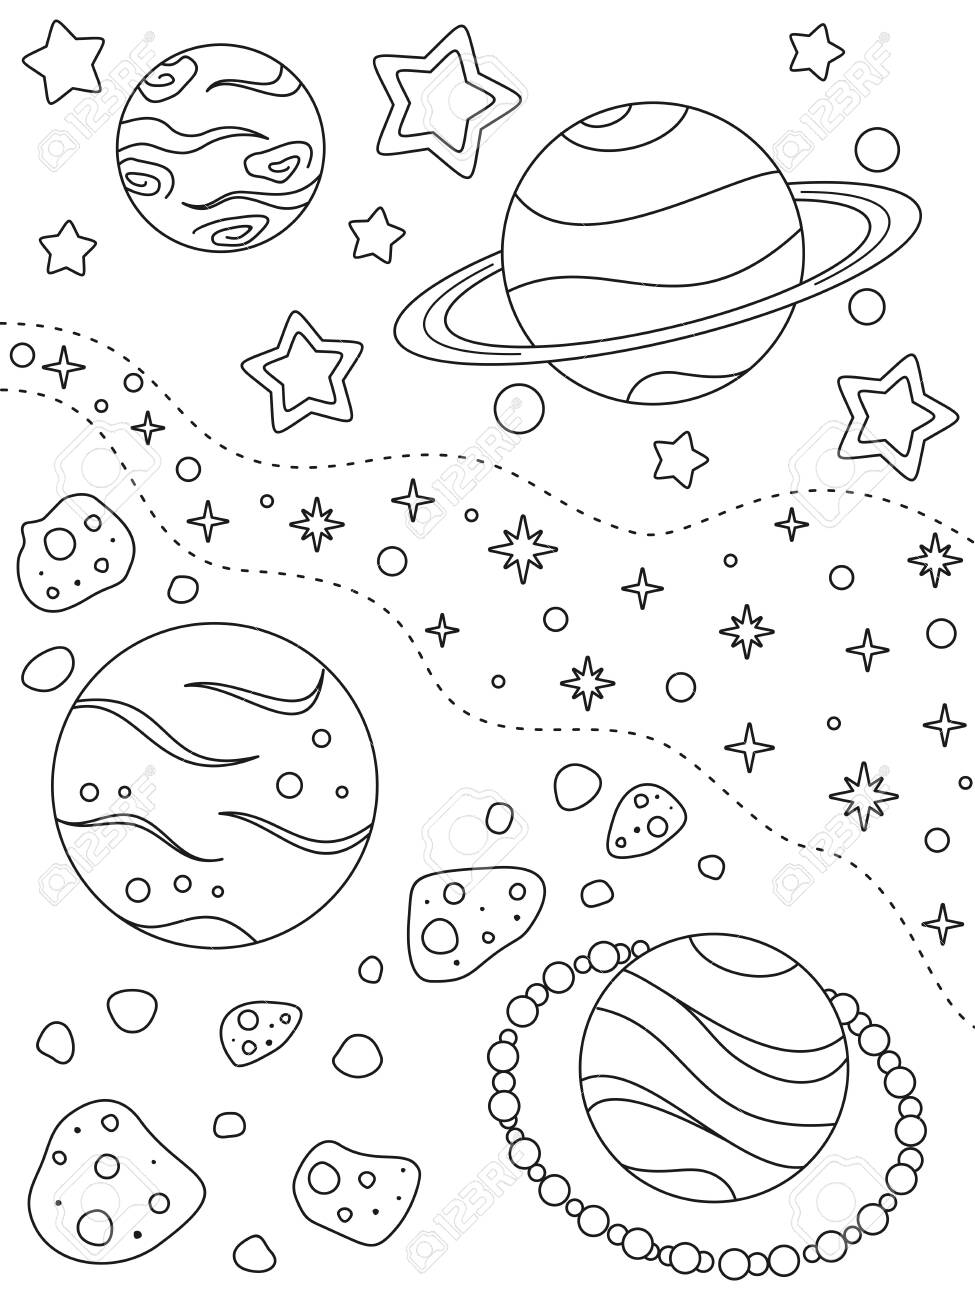 Coloring page with different planets, asteroids, nebulae and stars, black elements on a white background. Deep space. Vector design template for kids coloring book, print and poster. Entertainment and recreation for children - 149063806